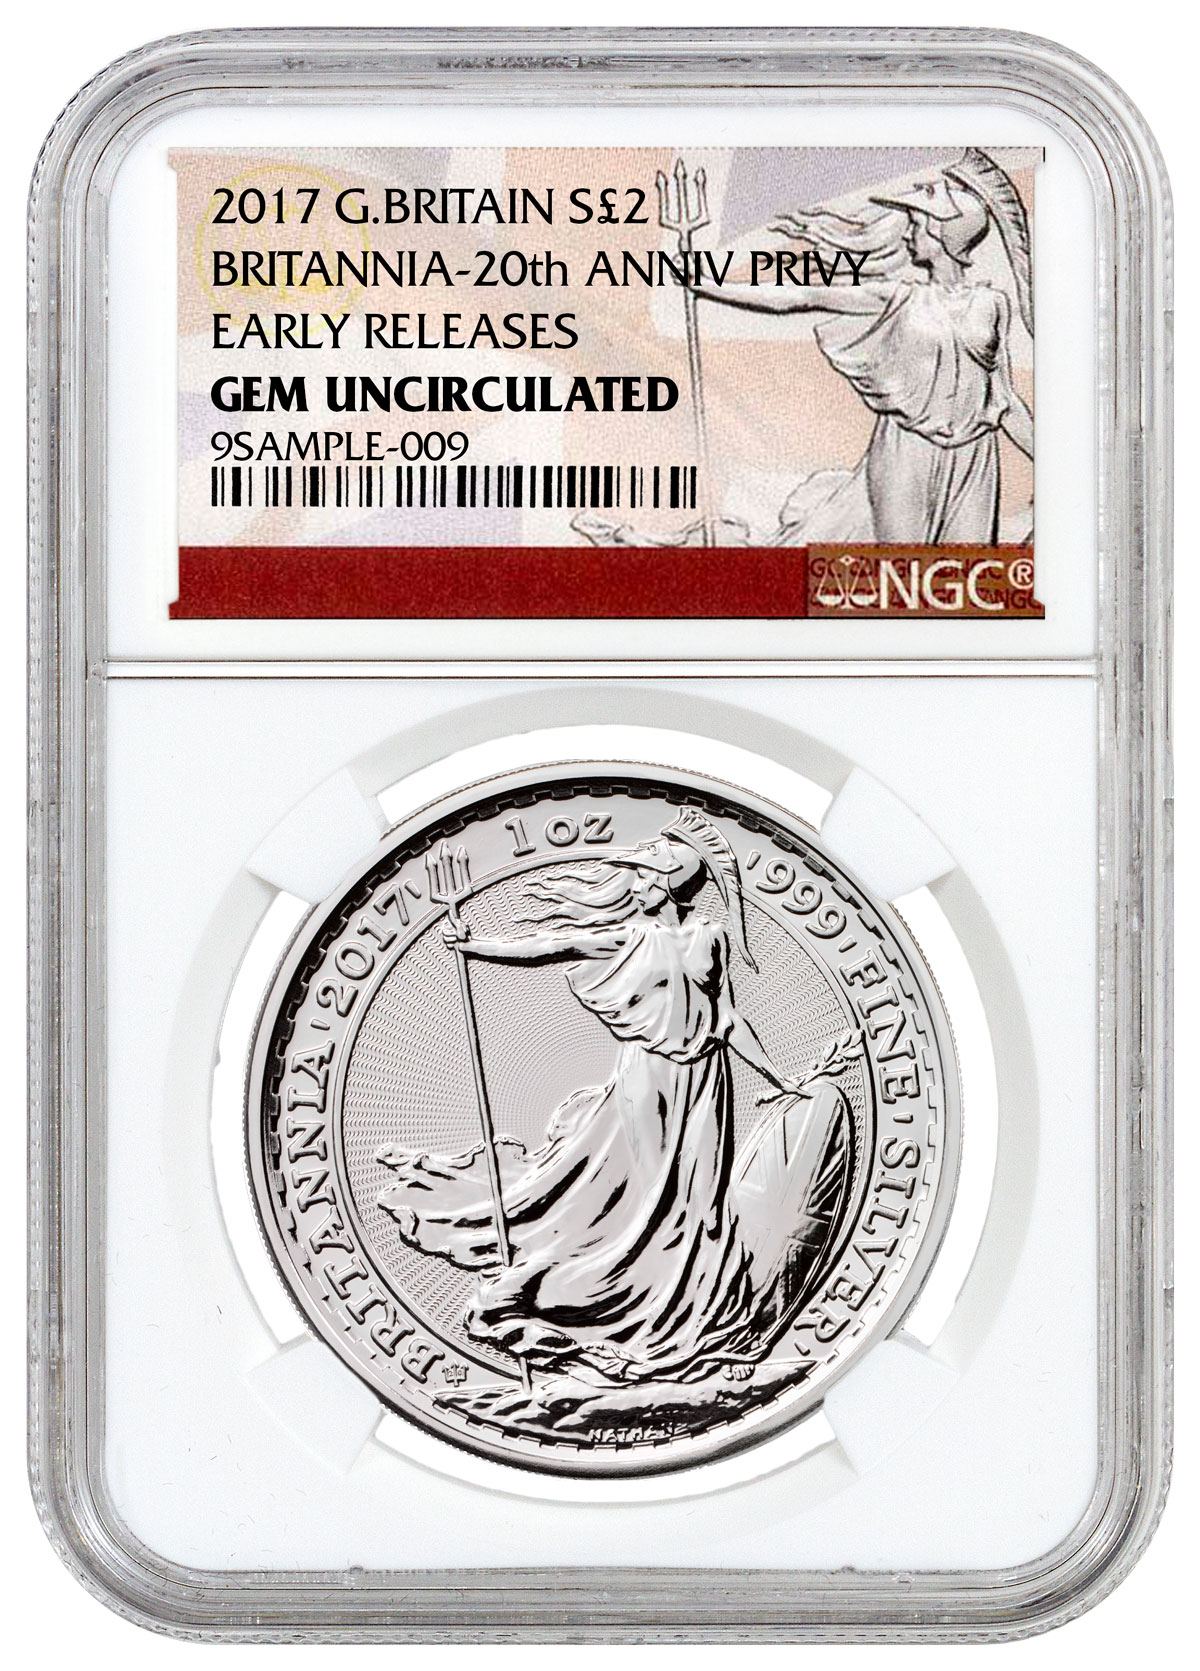 2017 Great Britain 1 oz Silver Britannia - 20th Anniversary Trident Privy £2 NGC GEM Uncirculated ER (Exclusive Britannia Label)